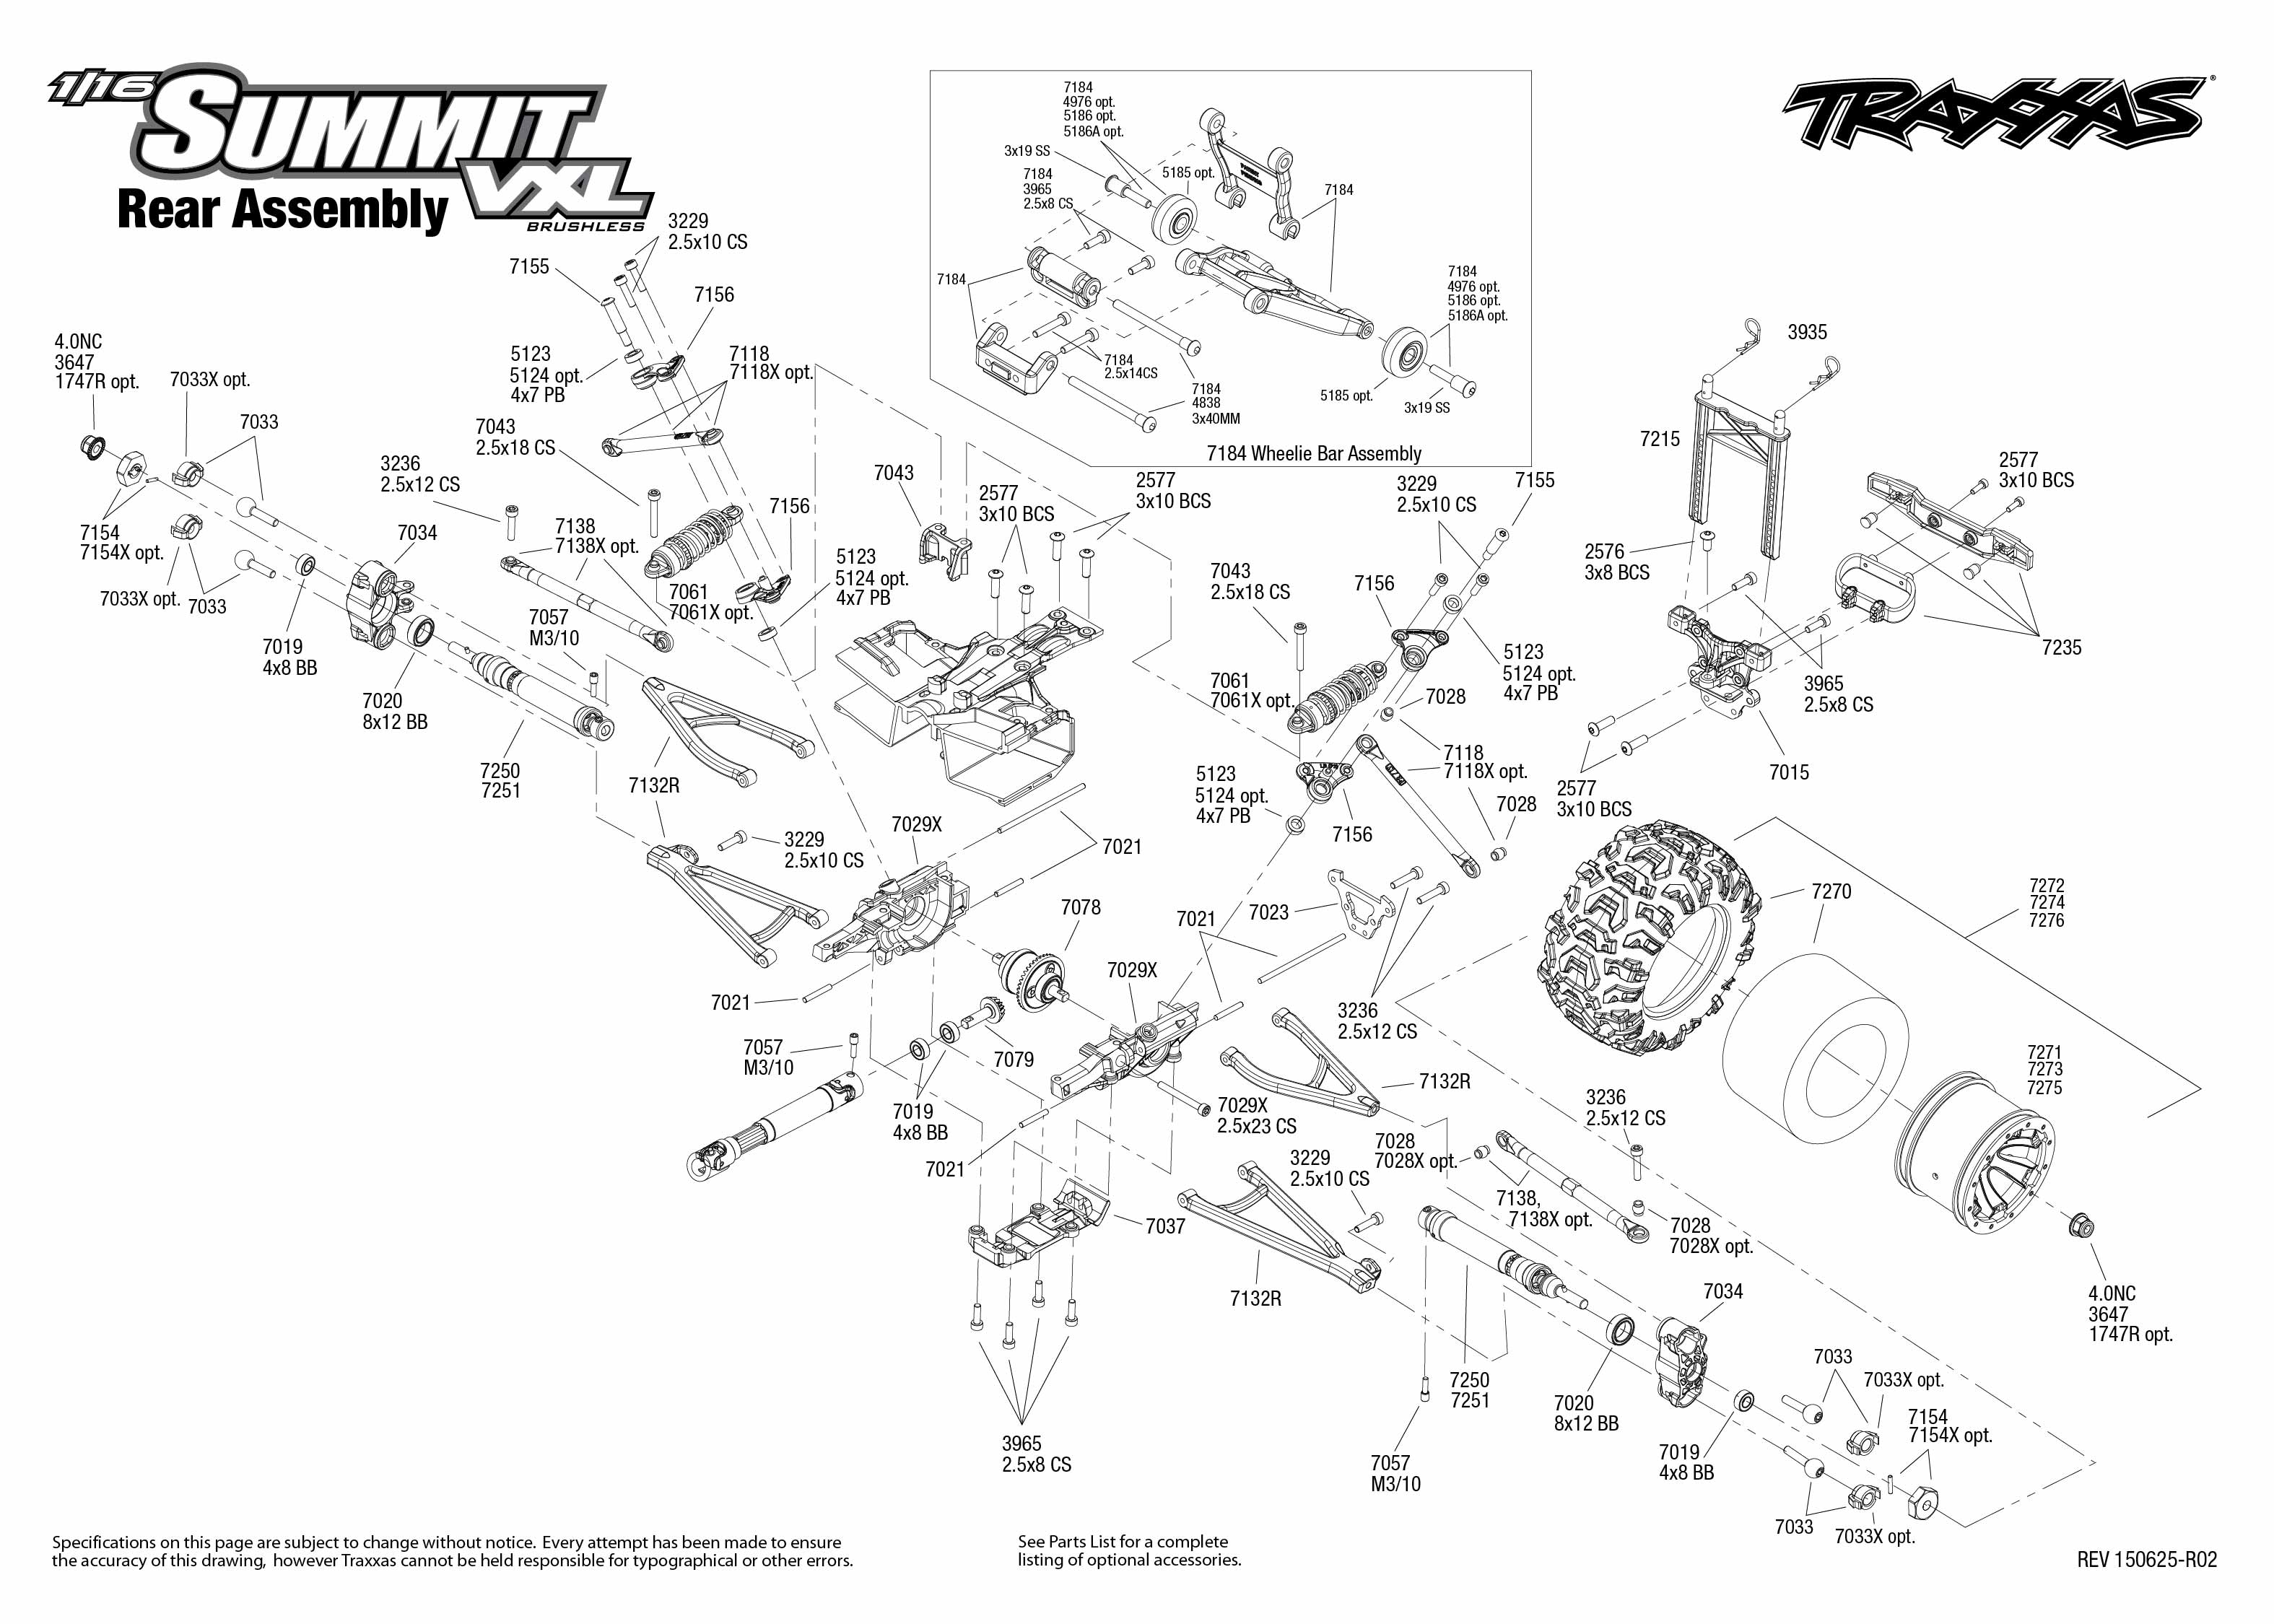 Traxxas Slash Wiring Diagram Library Nitro Rustler Parts 11wd Circuit And 1 16 Summit Vxl 72074 Rear Assembly Exploded View Rh Com